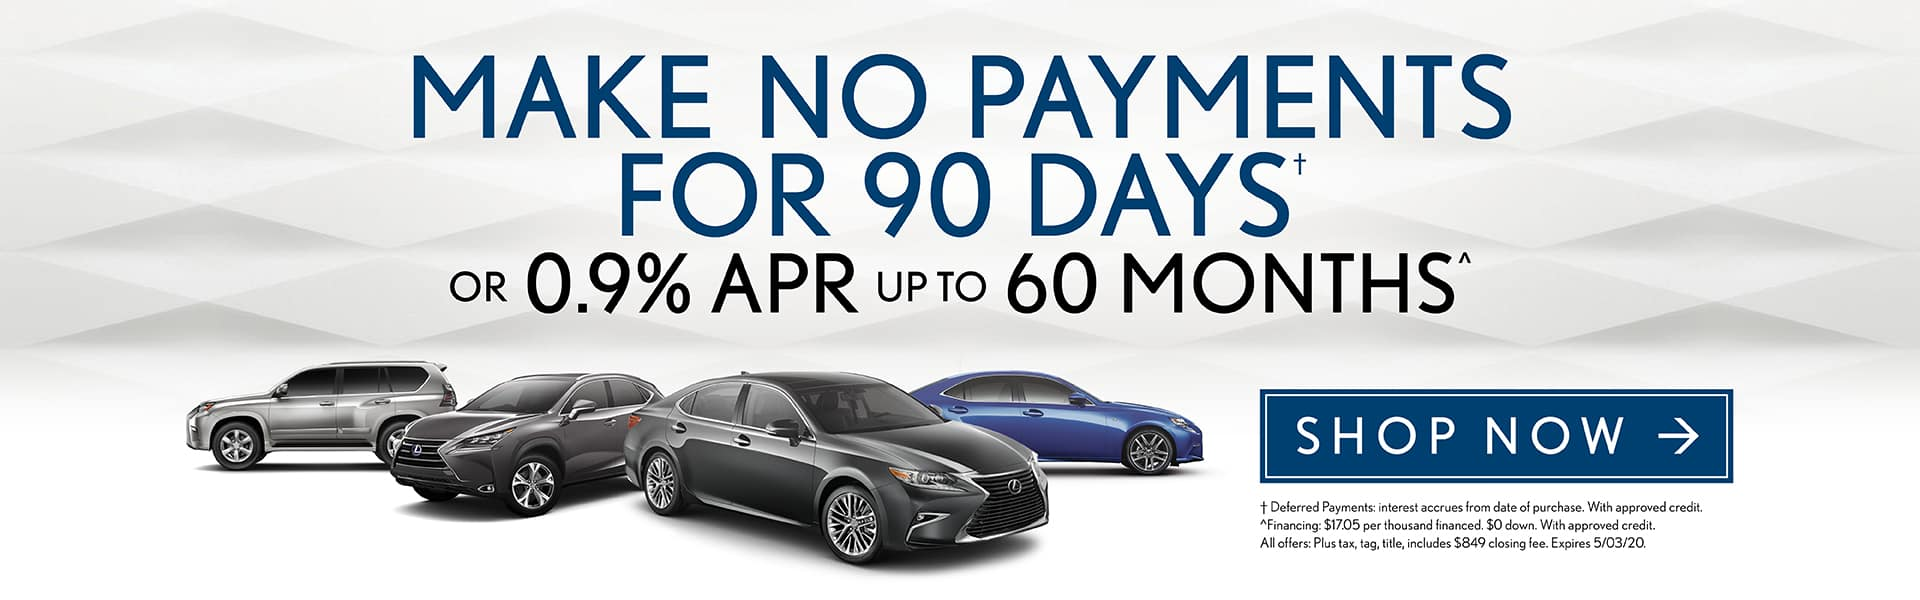 Make No Payments for 90 Days